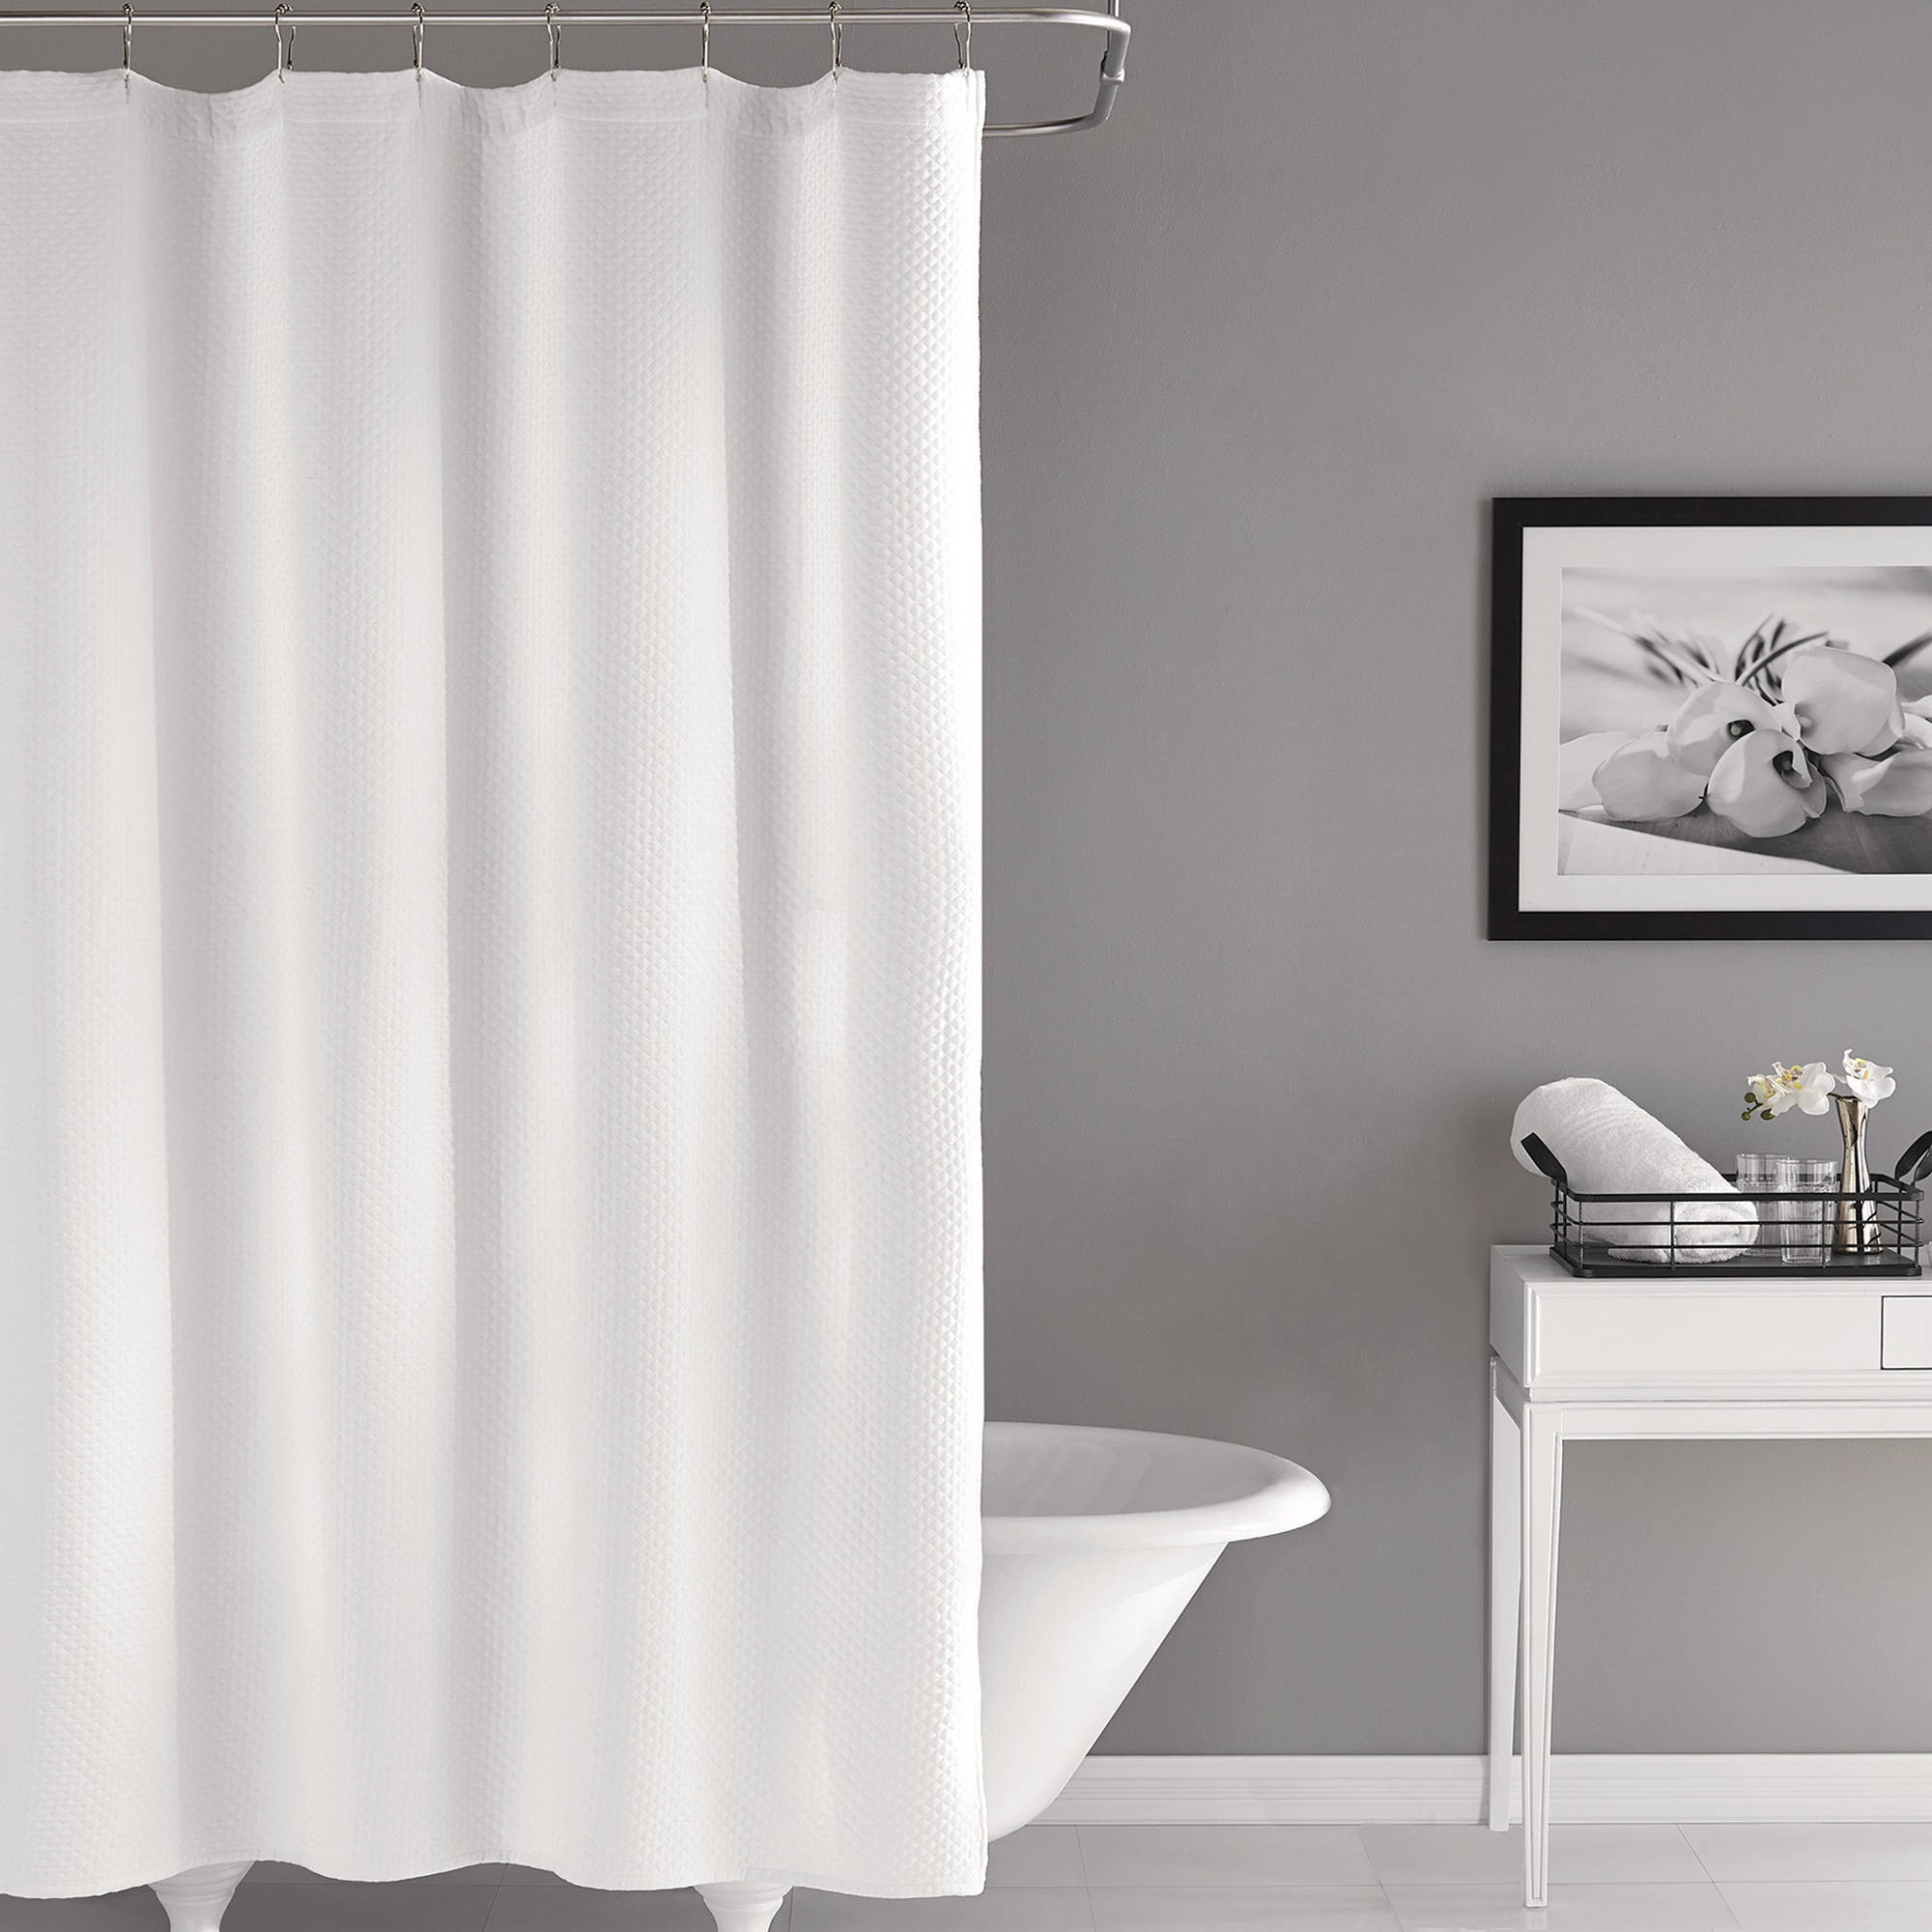 Best Shower Curtains Of The Best Shower Curtains For Every Bath - Better homes and gardens shower curtain